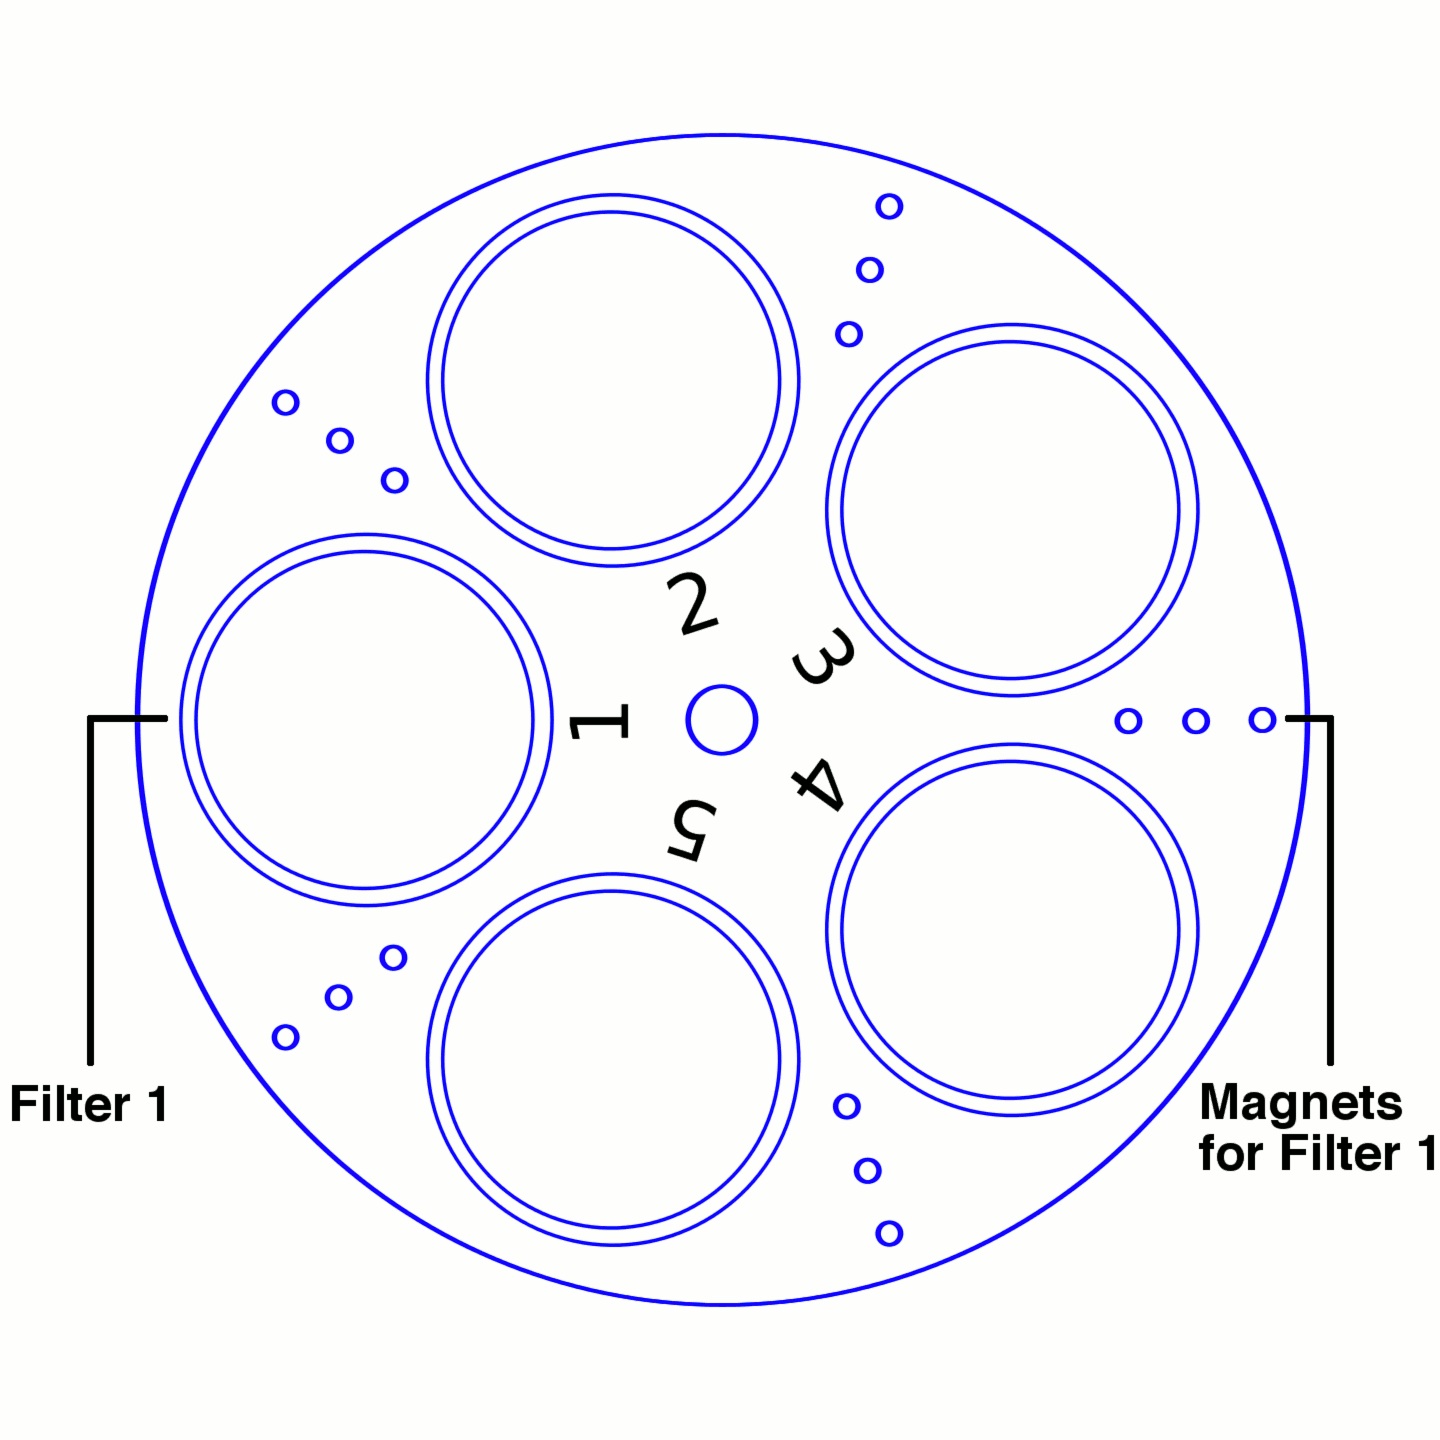 Arduino filter wheel filter and magnet relationship.